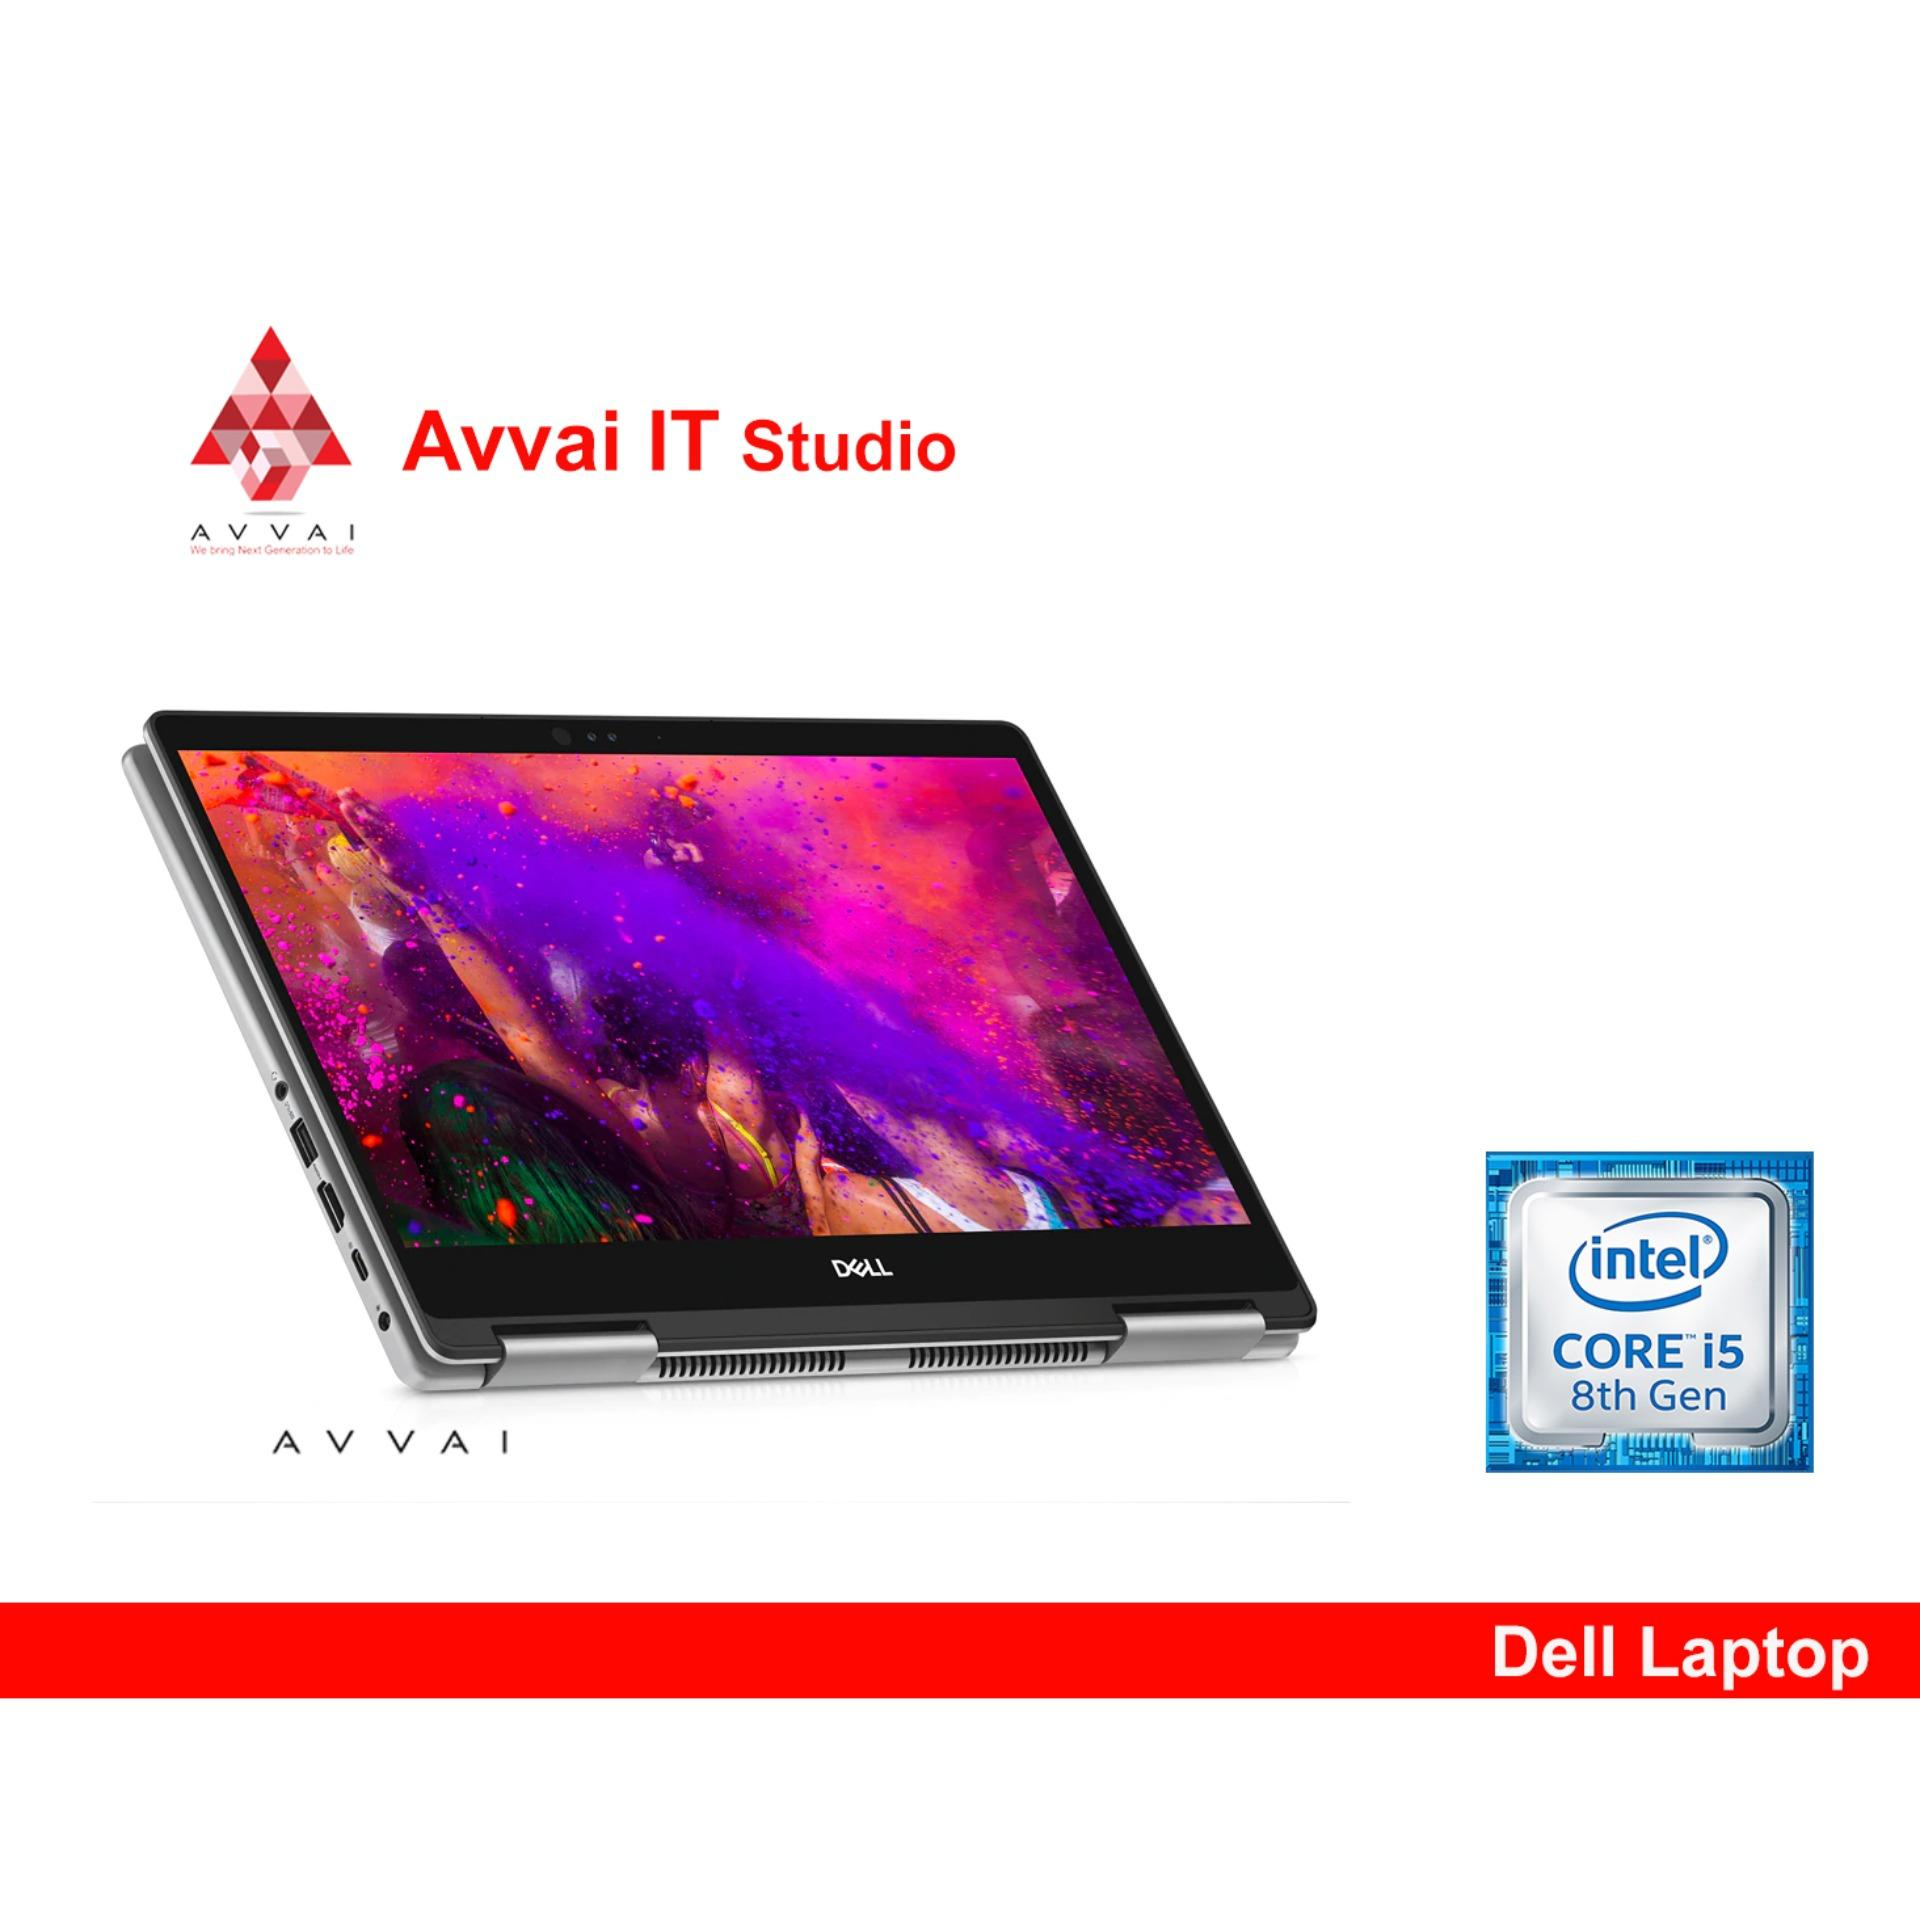 [LATEST ARRIVAL- 2018] DELL 8th Generation Inspiron 13 5000 Series 2-in-1 -5379- i5-8550U (6MB Cache, up to 3.4 GHz) 8GB, DDR4, 2400MHz 1 TB HDD 5400 RPM Windows 10 Home 13.3-inch FHD IPS Truelife LED-Backlit Narrow Border Touch Display	Era Gray Cover